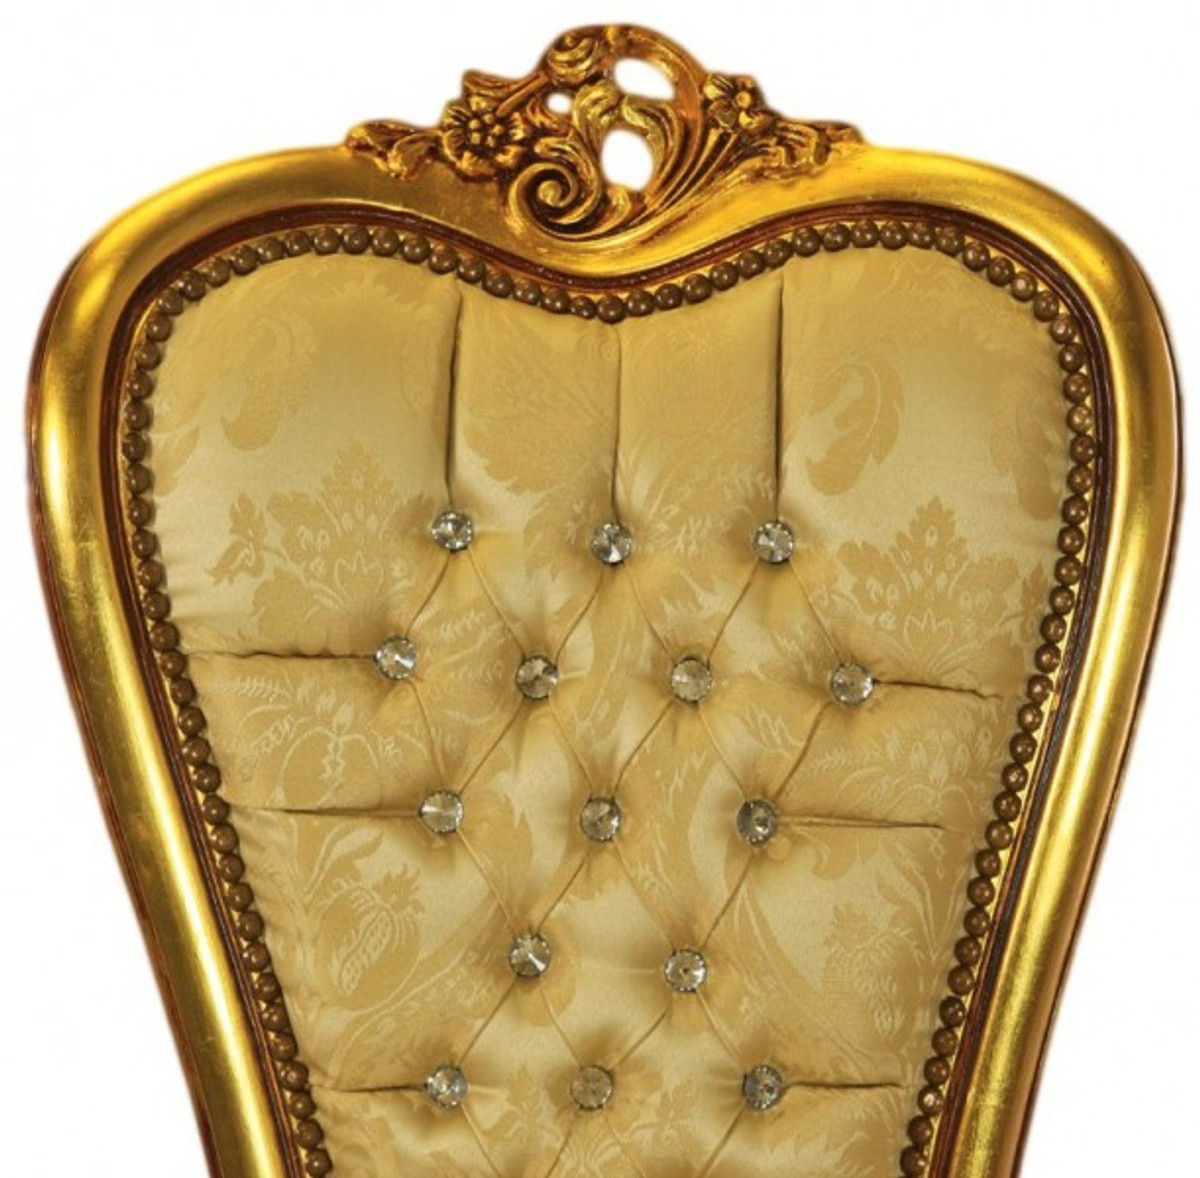 Casa Padrino Barock Thron Stuhl Queen Anne Gold Muster / Gold mit ...